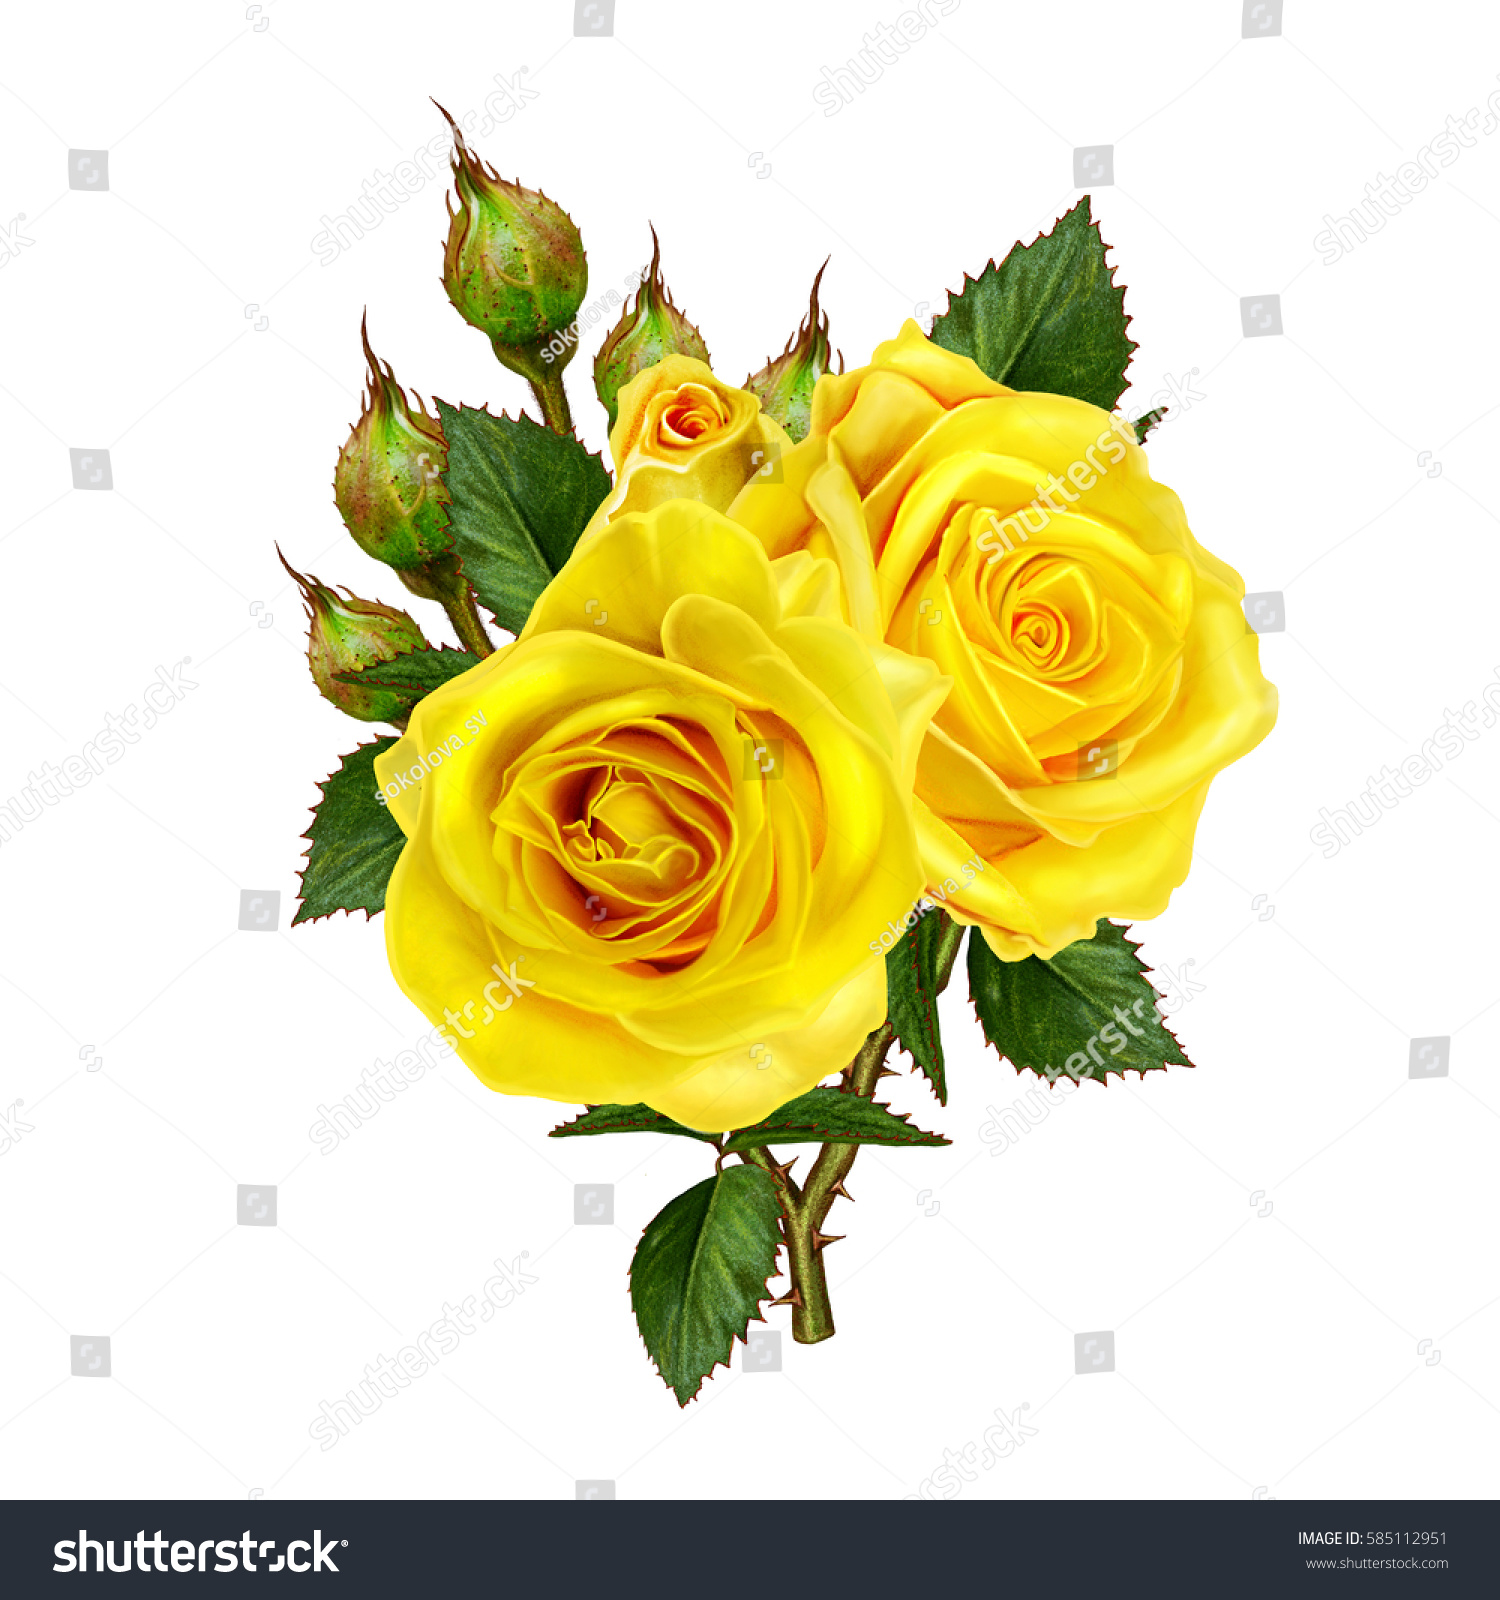 Flower Composition Beautiful Bouquet Yellow Roses Stock Illustration